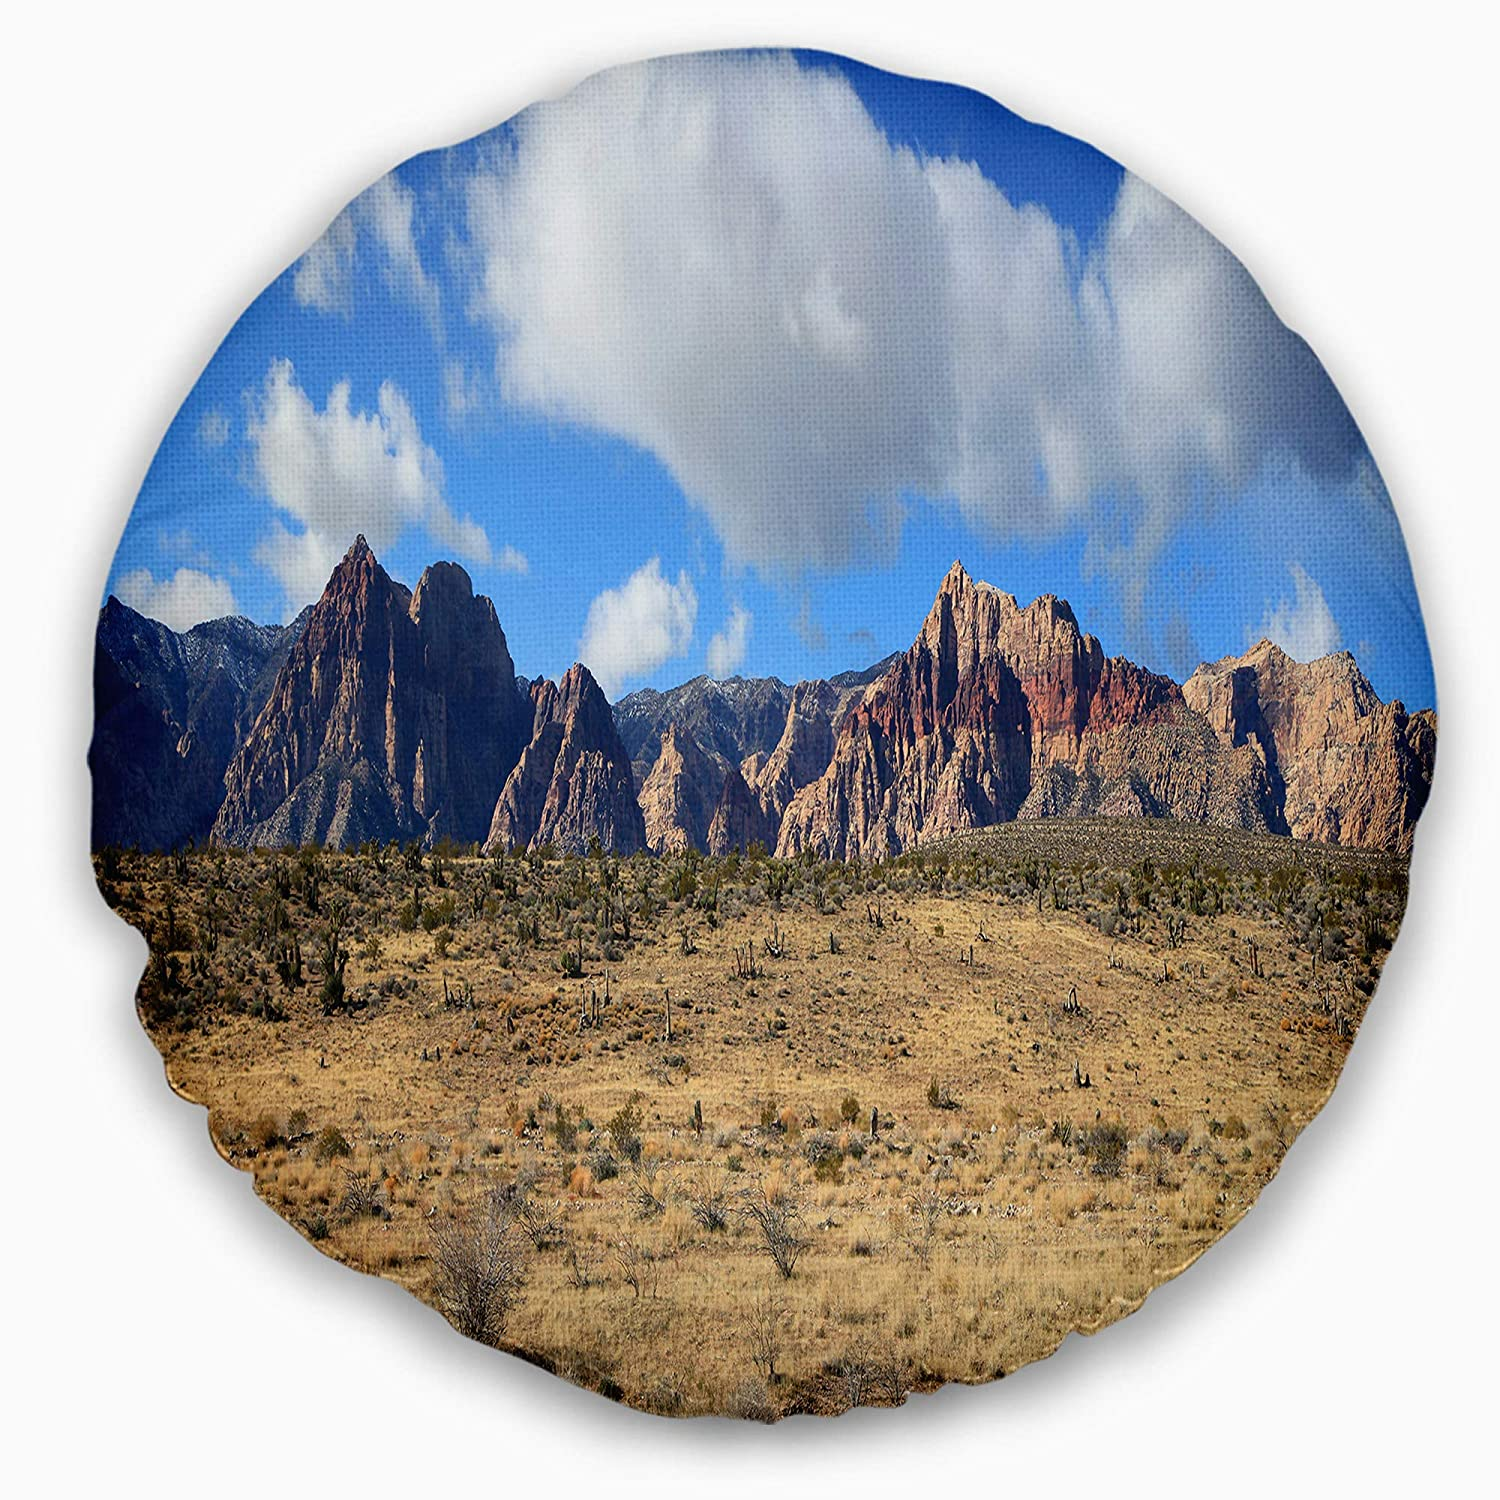 Sofa Designart CU15281-20-20-C Red Rock Canyon Landscape Printed Throw Cushion Pillow Cover for Living Room 20 Round